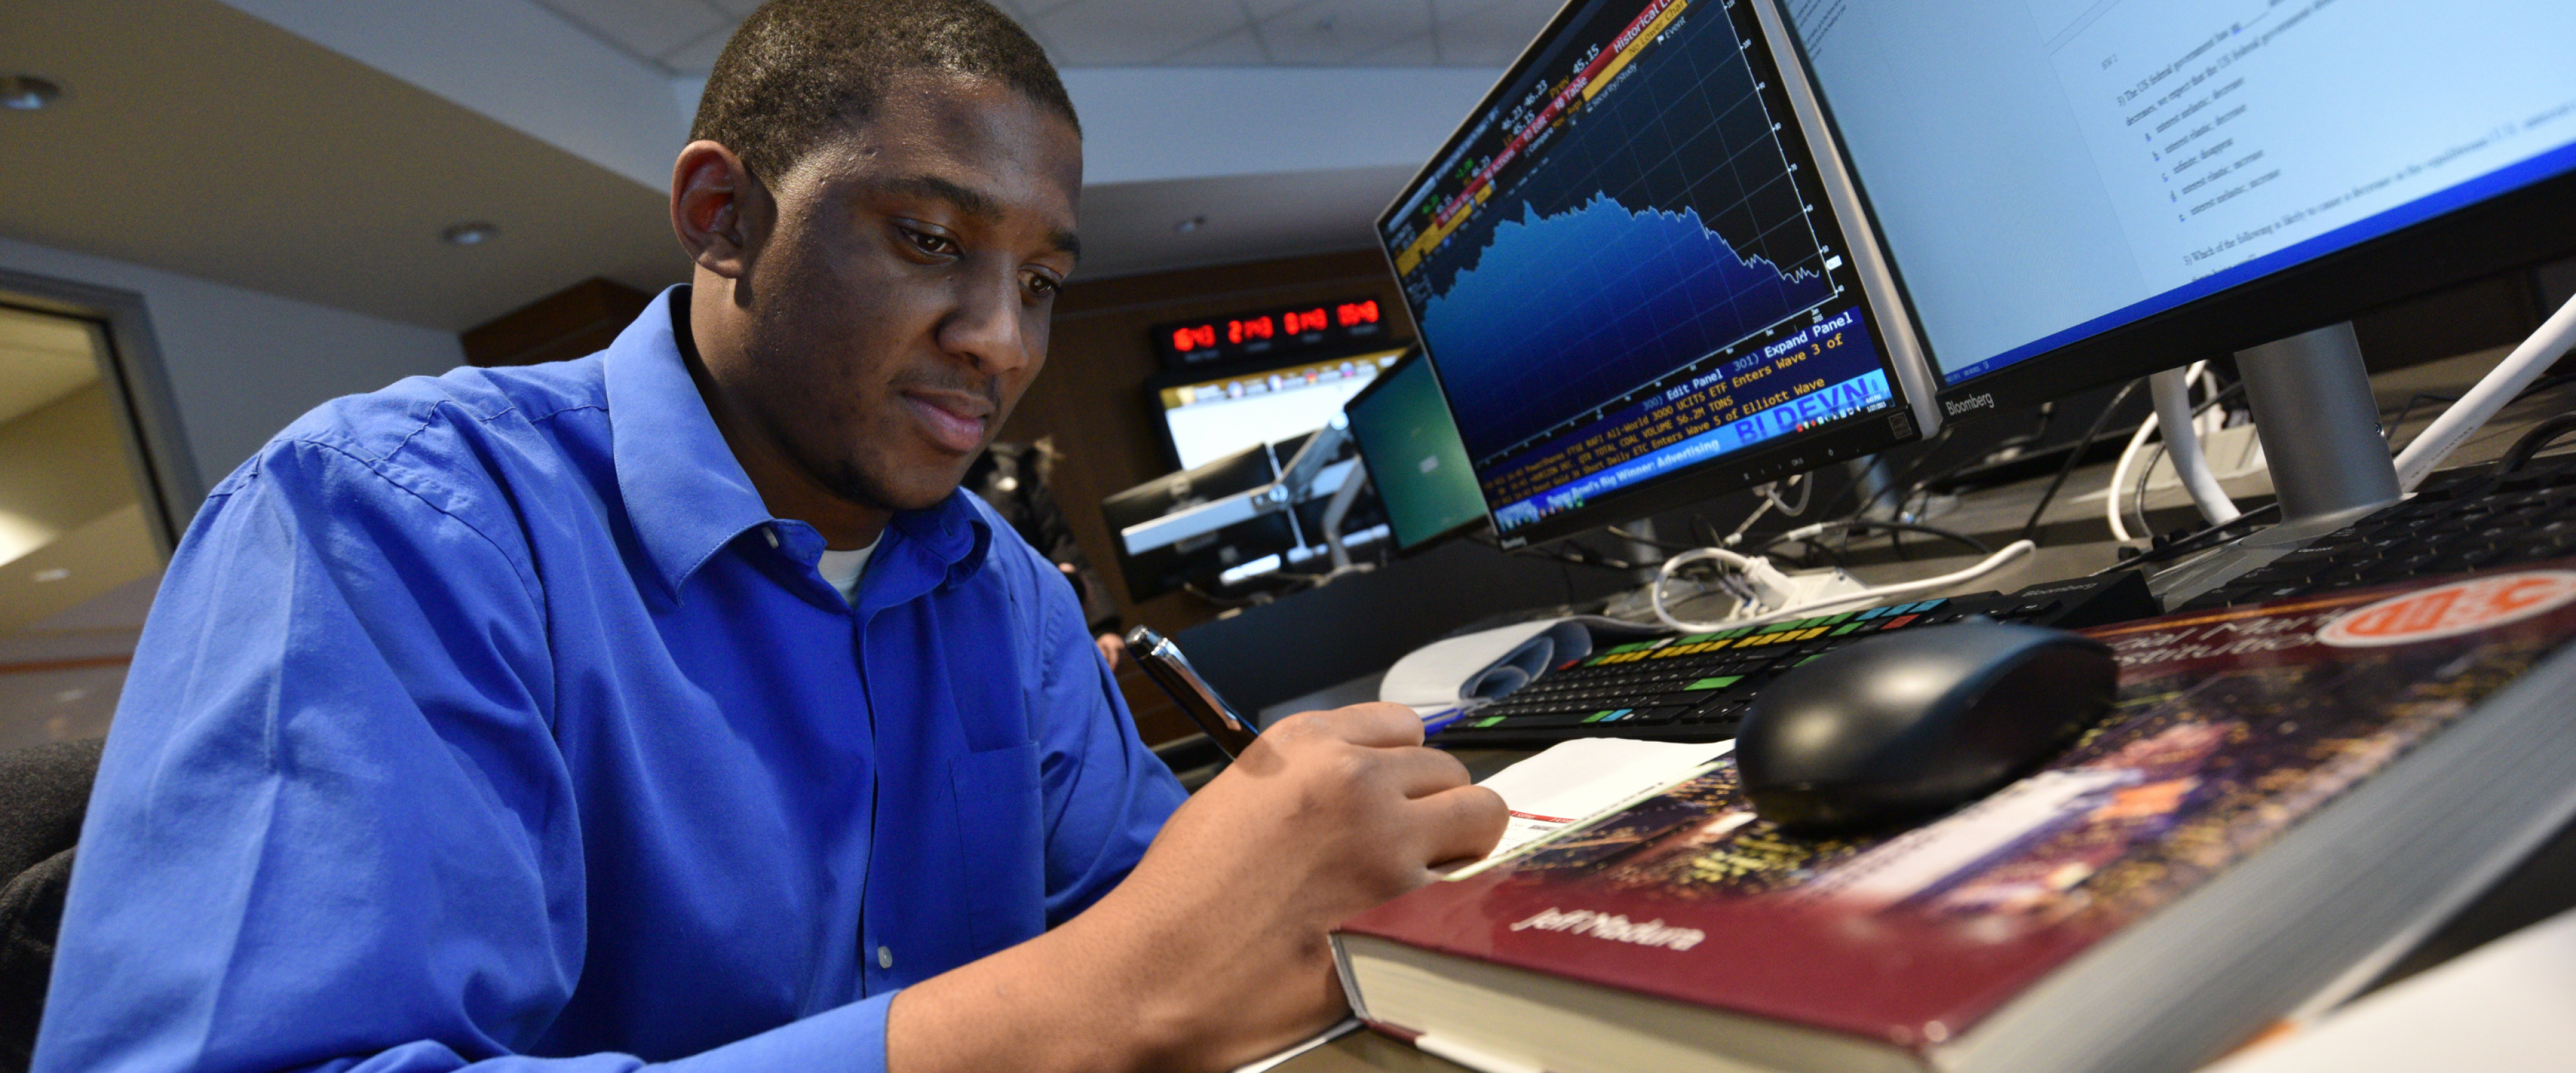 Student evaluating the stock market trends